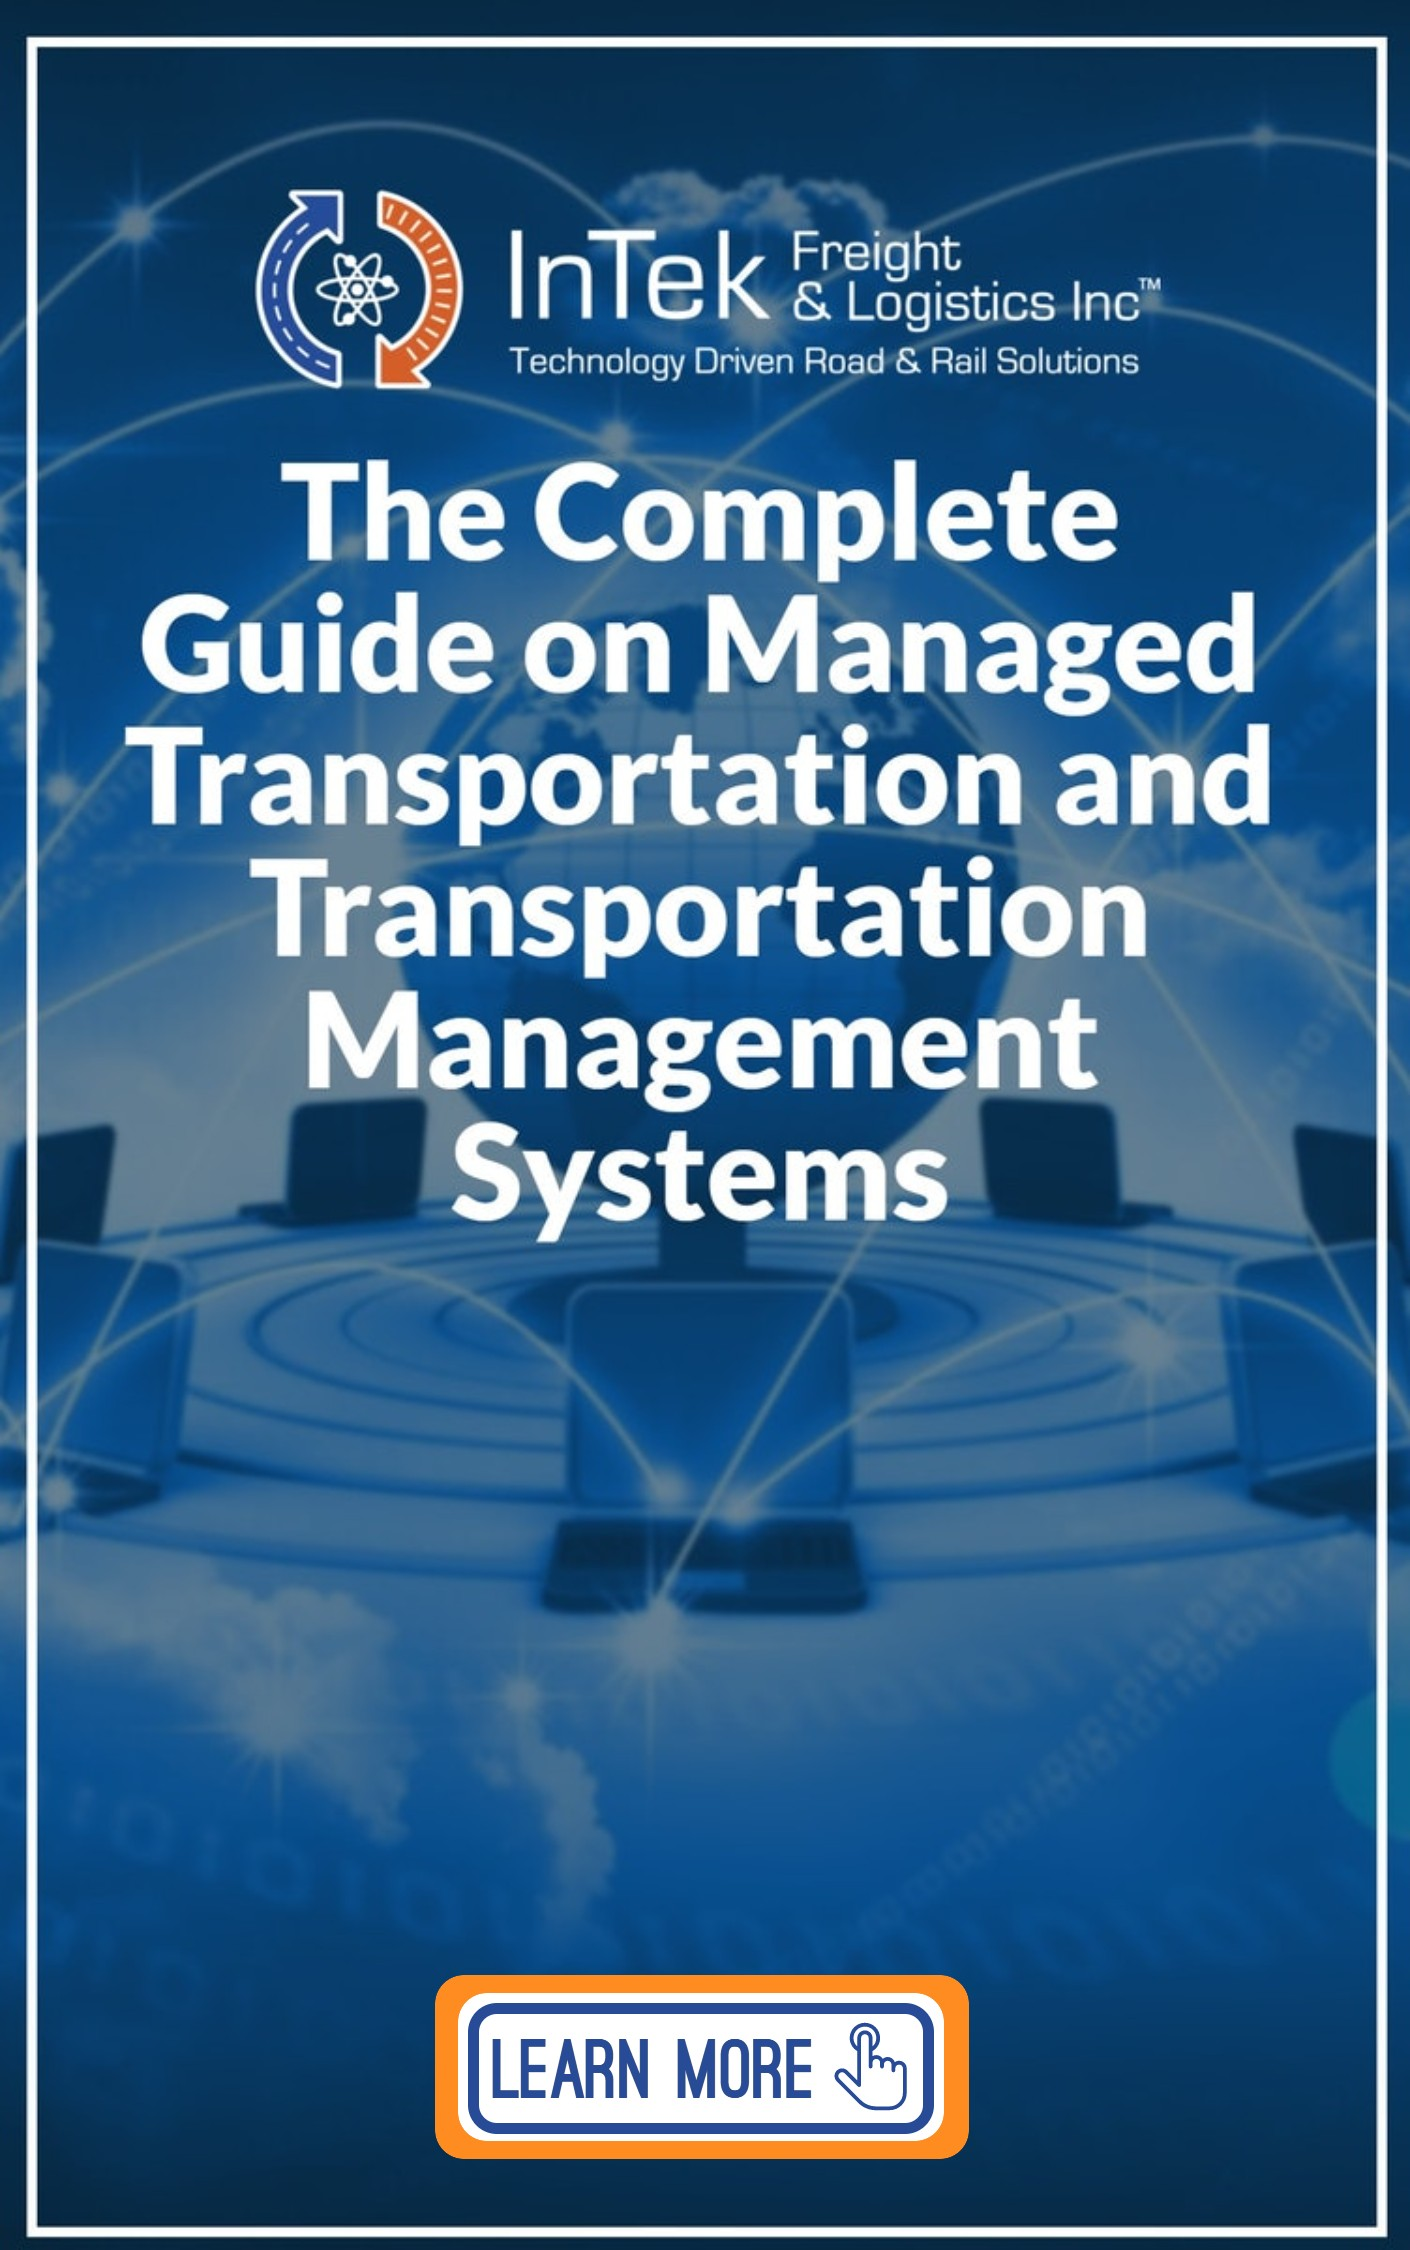 Complete Guide on Managed Transportation Services